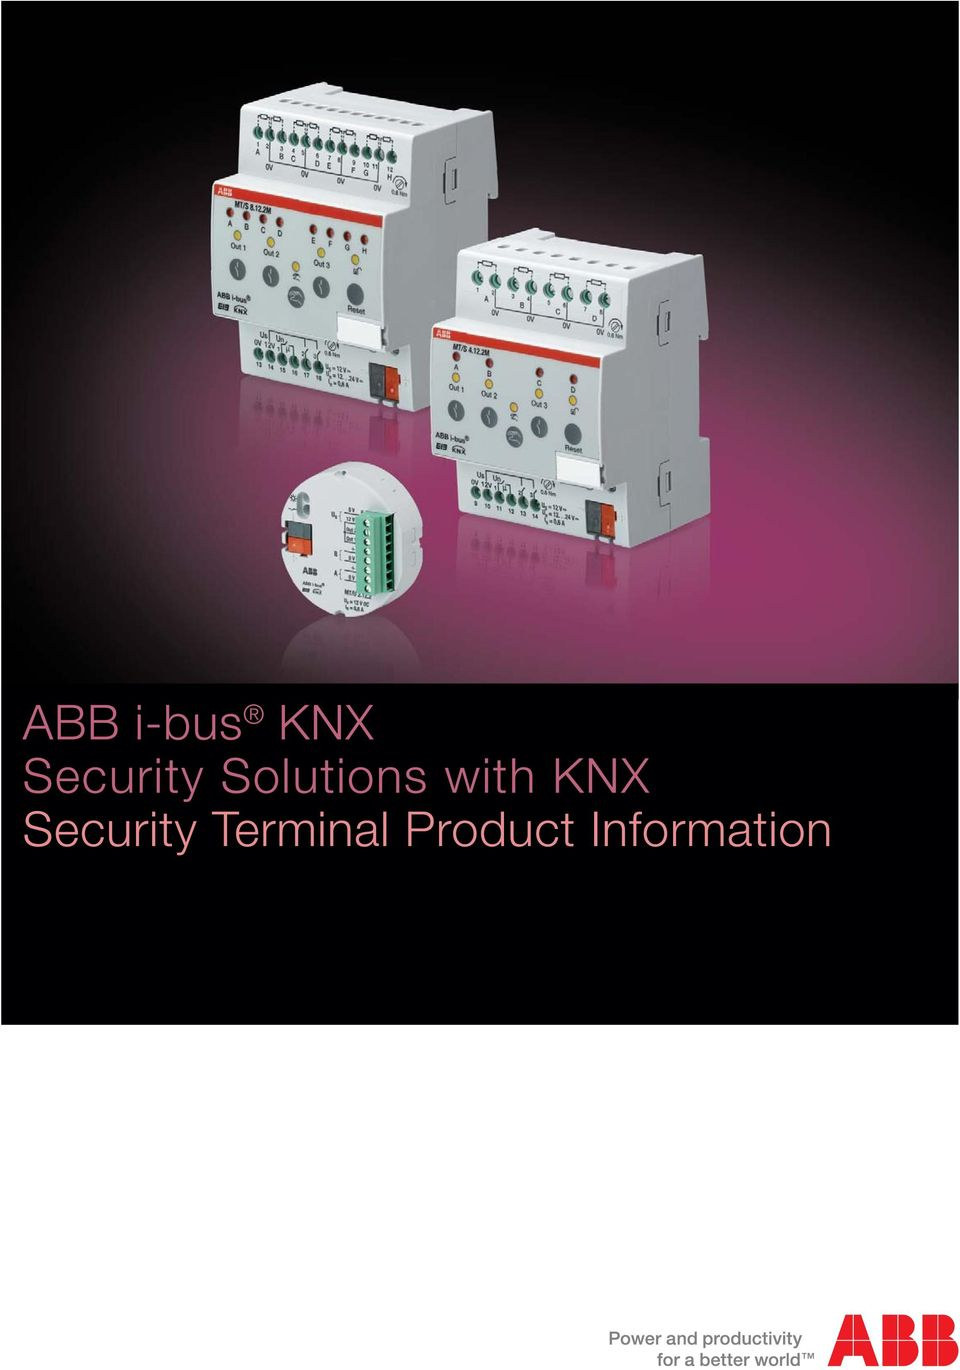 ABB i-bus KNX Security Solutions with KNX Security Terminal